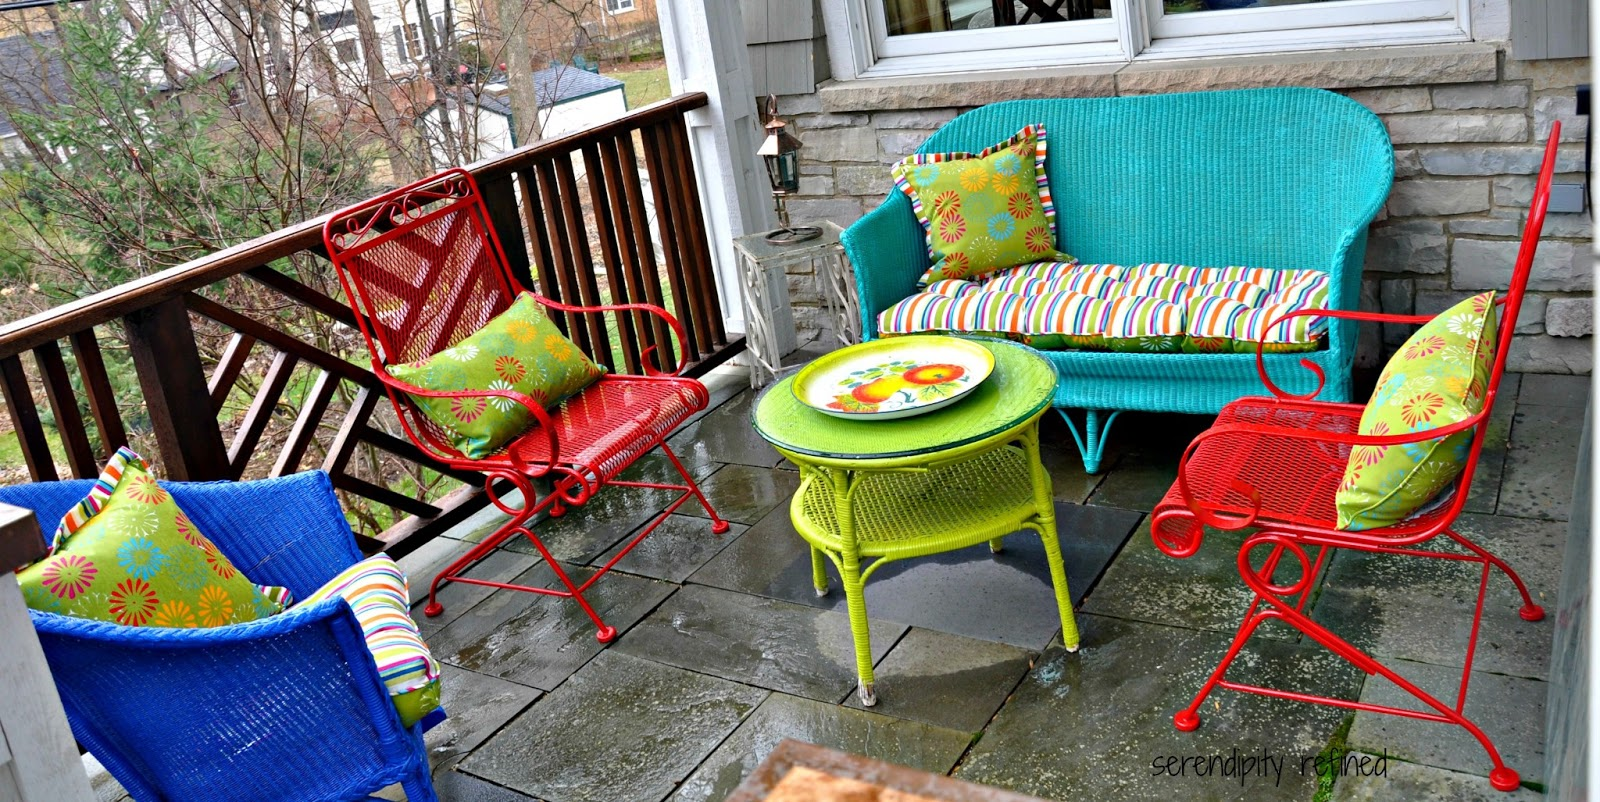 Serendipity Refined Blog  Wicker and Wrought Iron Patio Furniture     Spray painted brightly colored wicker and Wrought Iron Patio furniture  makeover